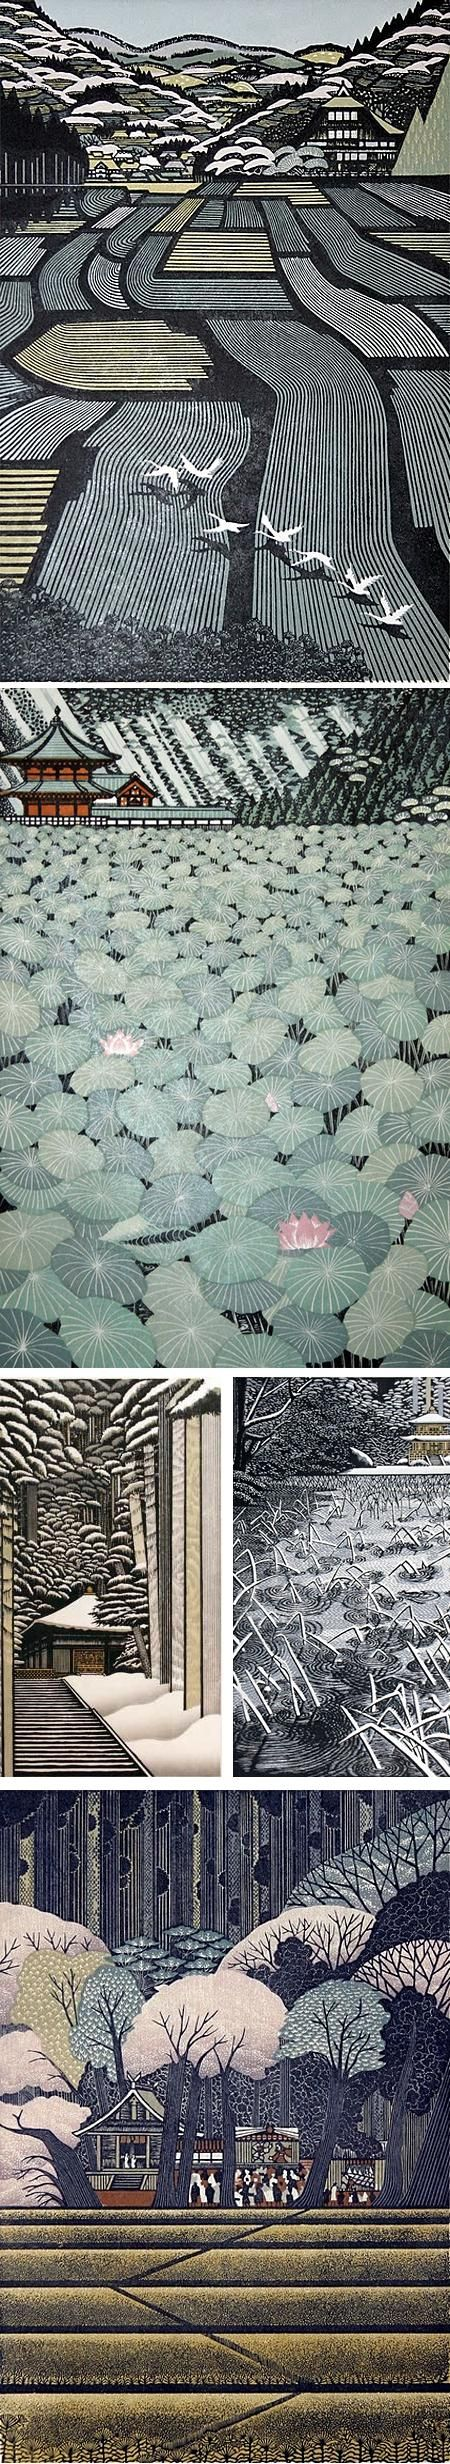 Ray Morimura (b.1948) ;  Japanese artist from Tokyo who works mostly with wood block prints